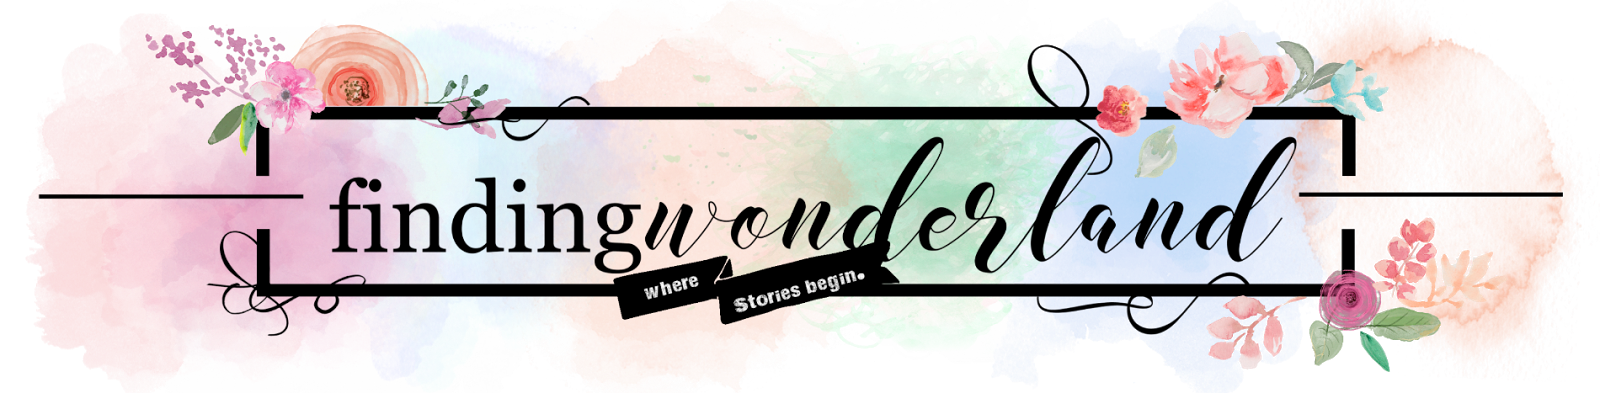 Finding Wonderland | Where Stories Begin